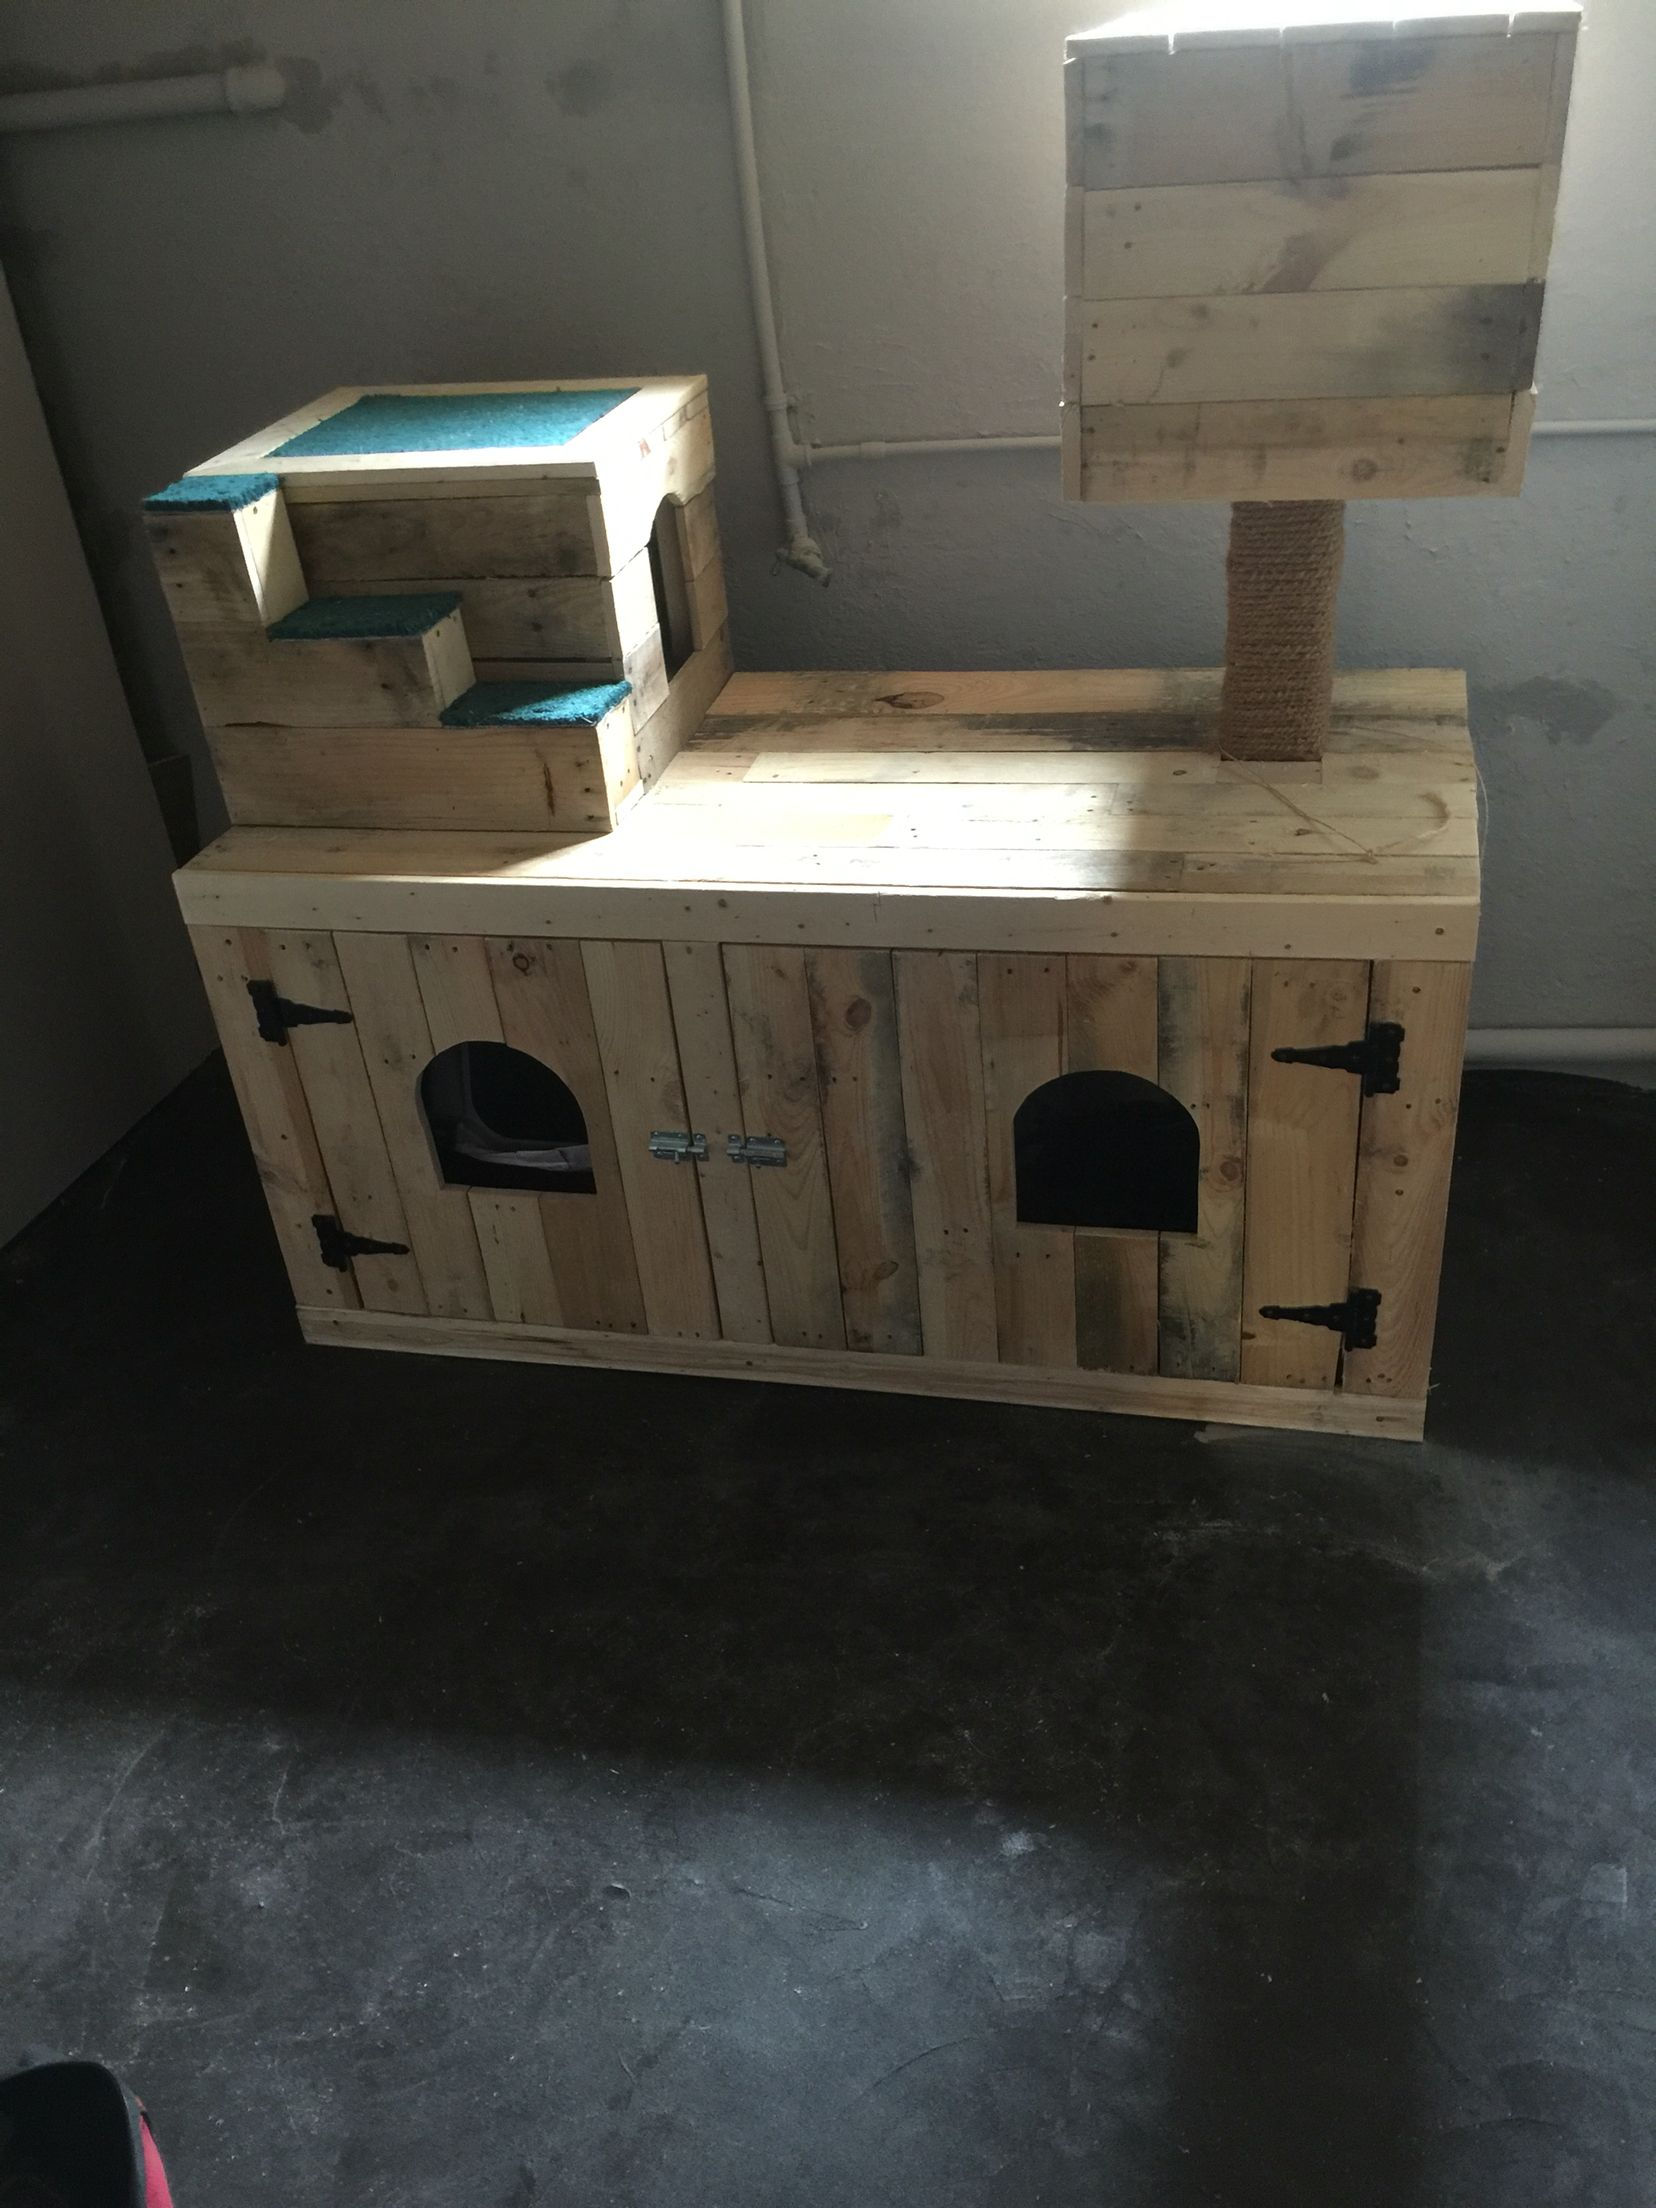 In Process Cat Litter Box Enclosure And Hideaways Using Pallet Wood Hiding Cat Litter Box Cat Litter Tray Litter Box Furniture